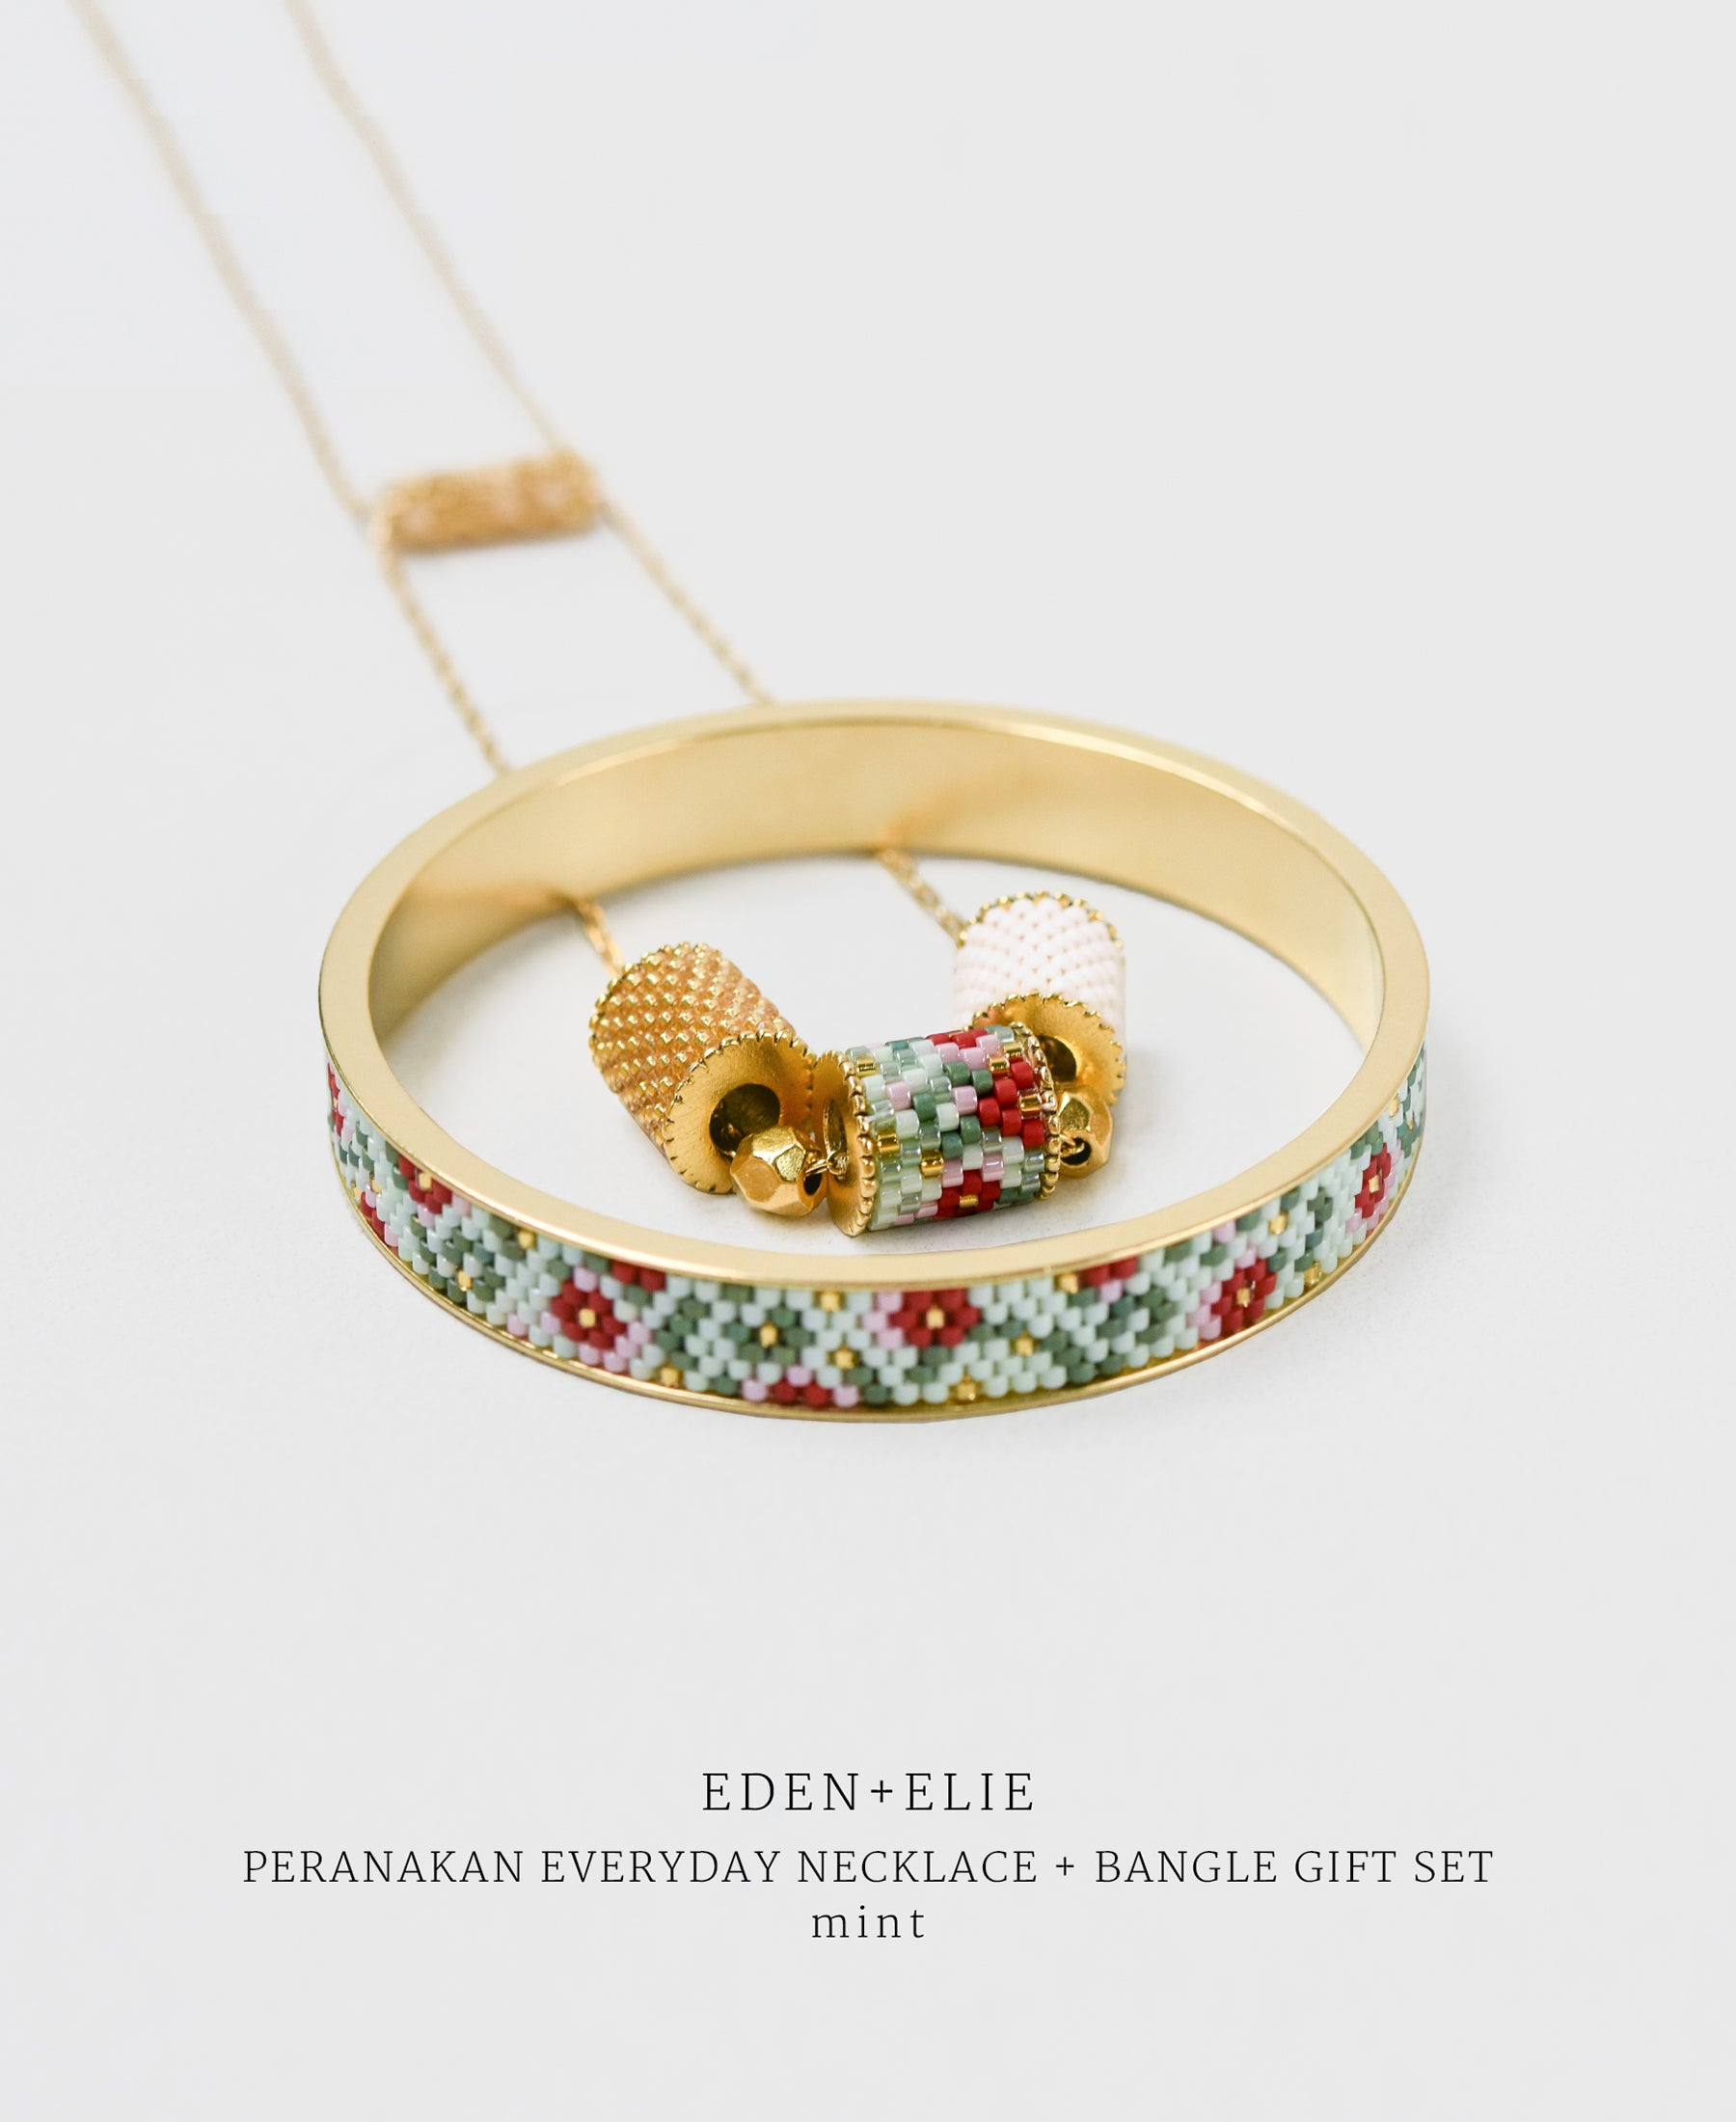 EDEN + ELIE gold plated jewelry Modern Peranakan adjustable length necklace + bangle gift set - mint